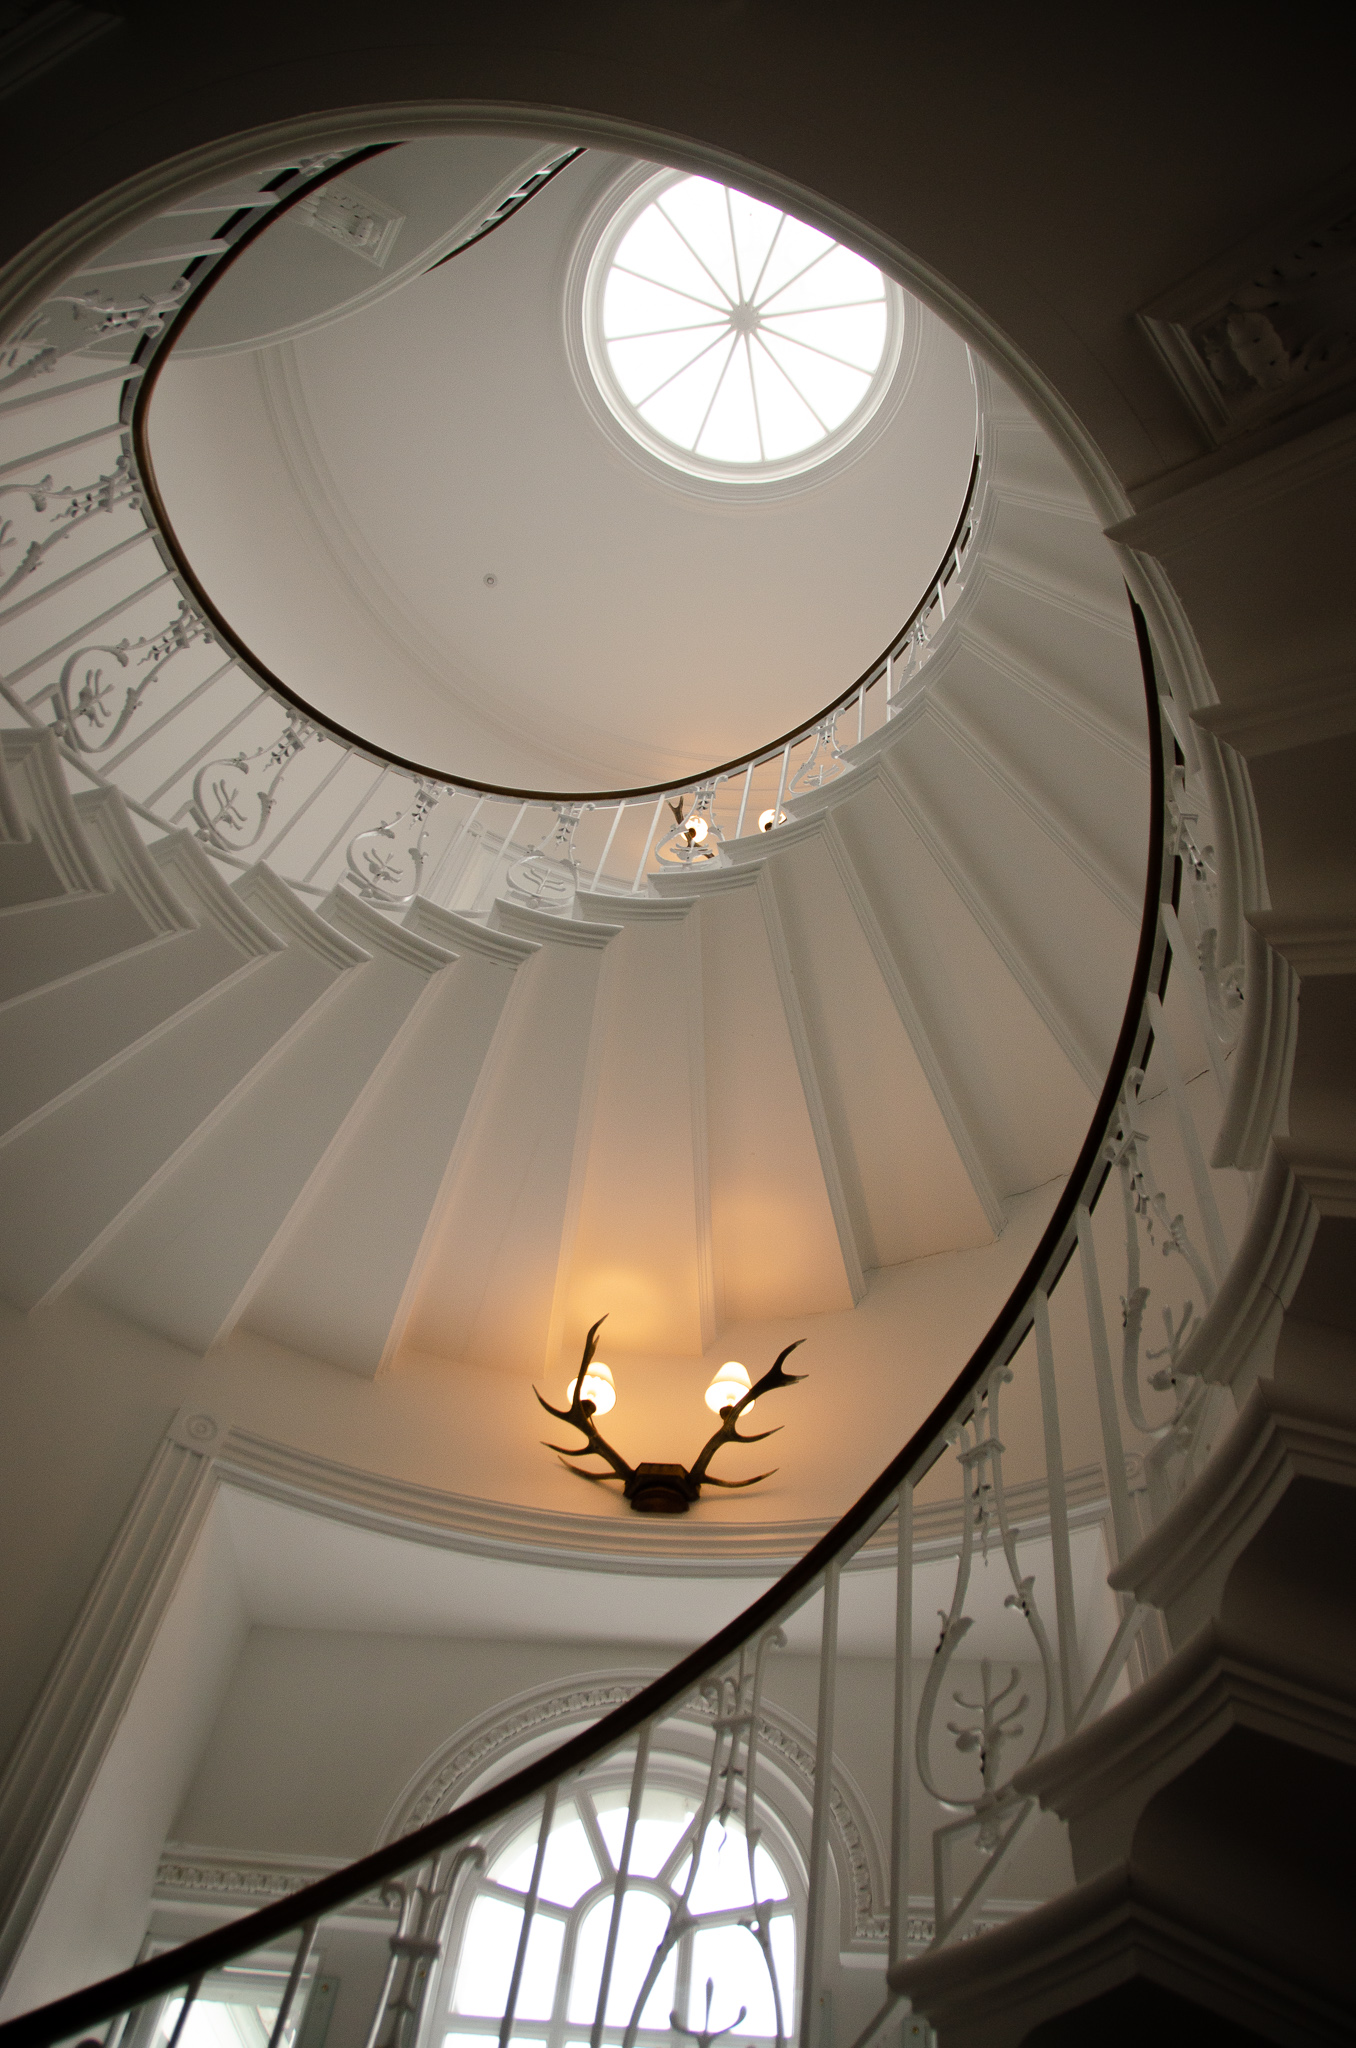 the impressive staircase leading up to the guest rooms in the house.